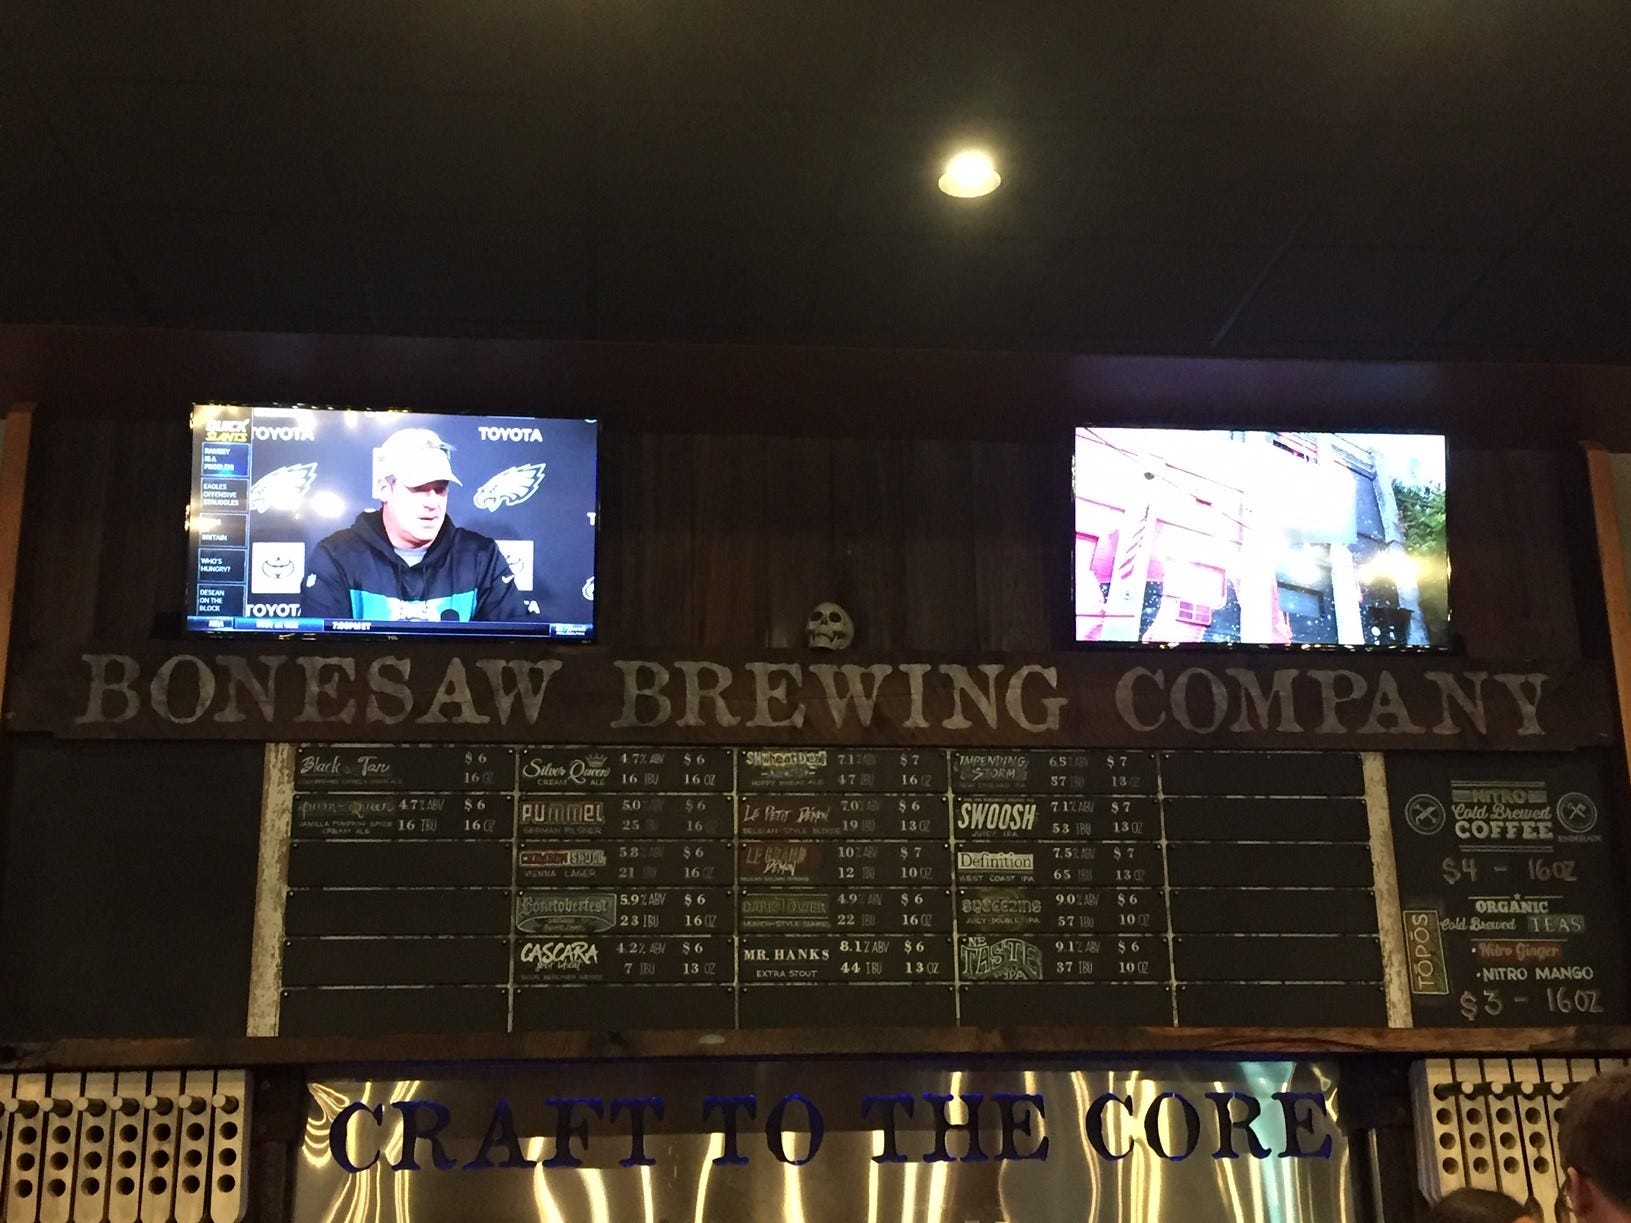 The beer menu at Bonesaw Brewing Company. The brewery boasts a 30-tap system.